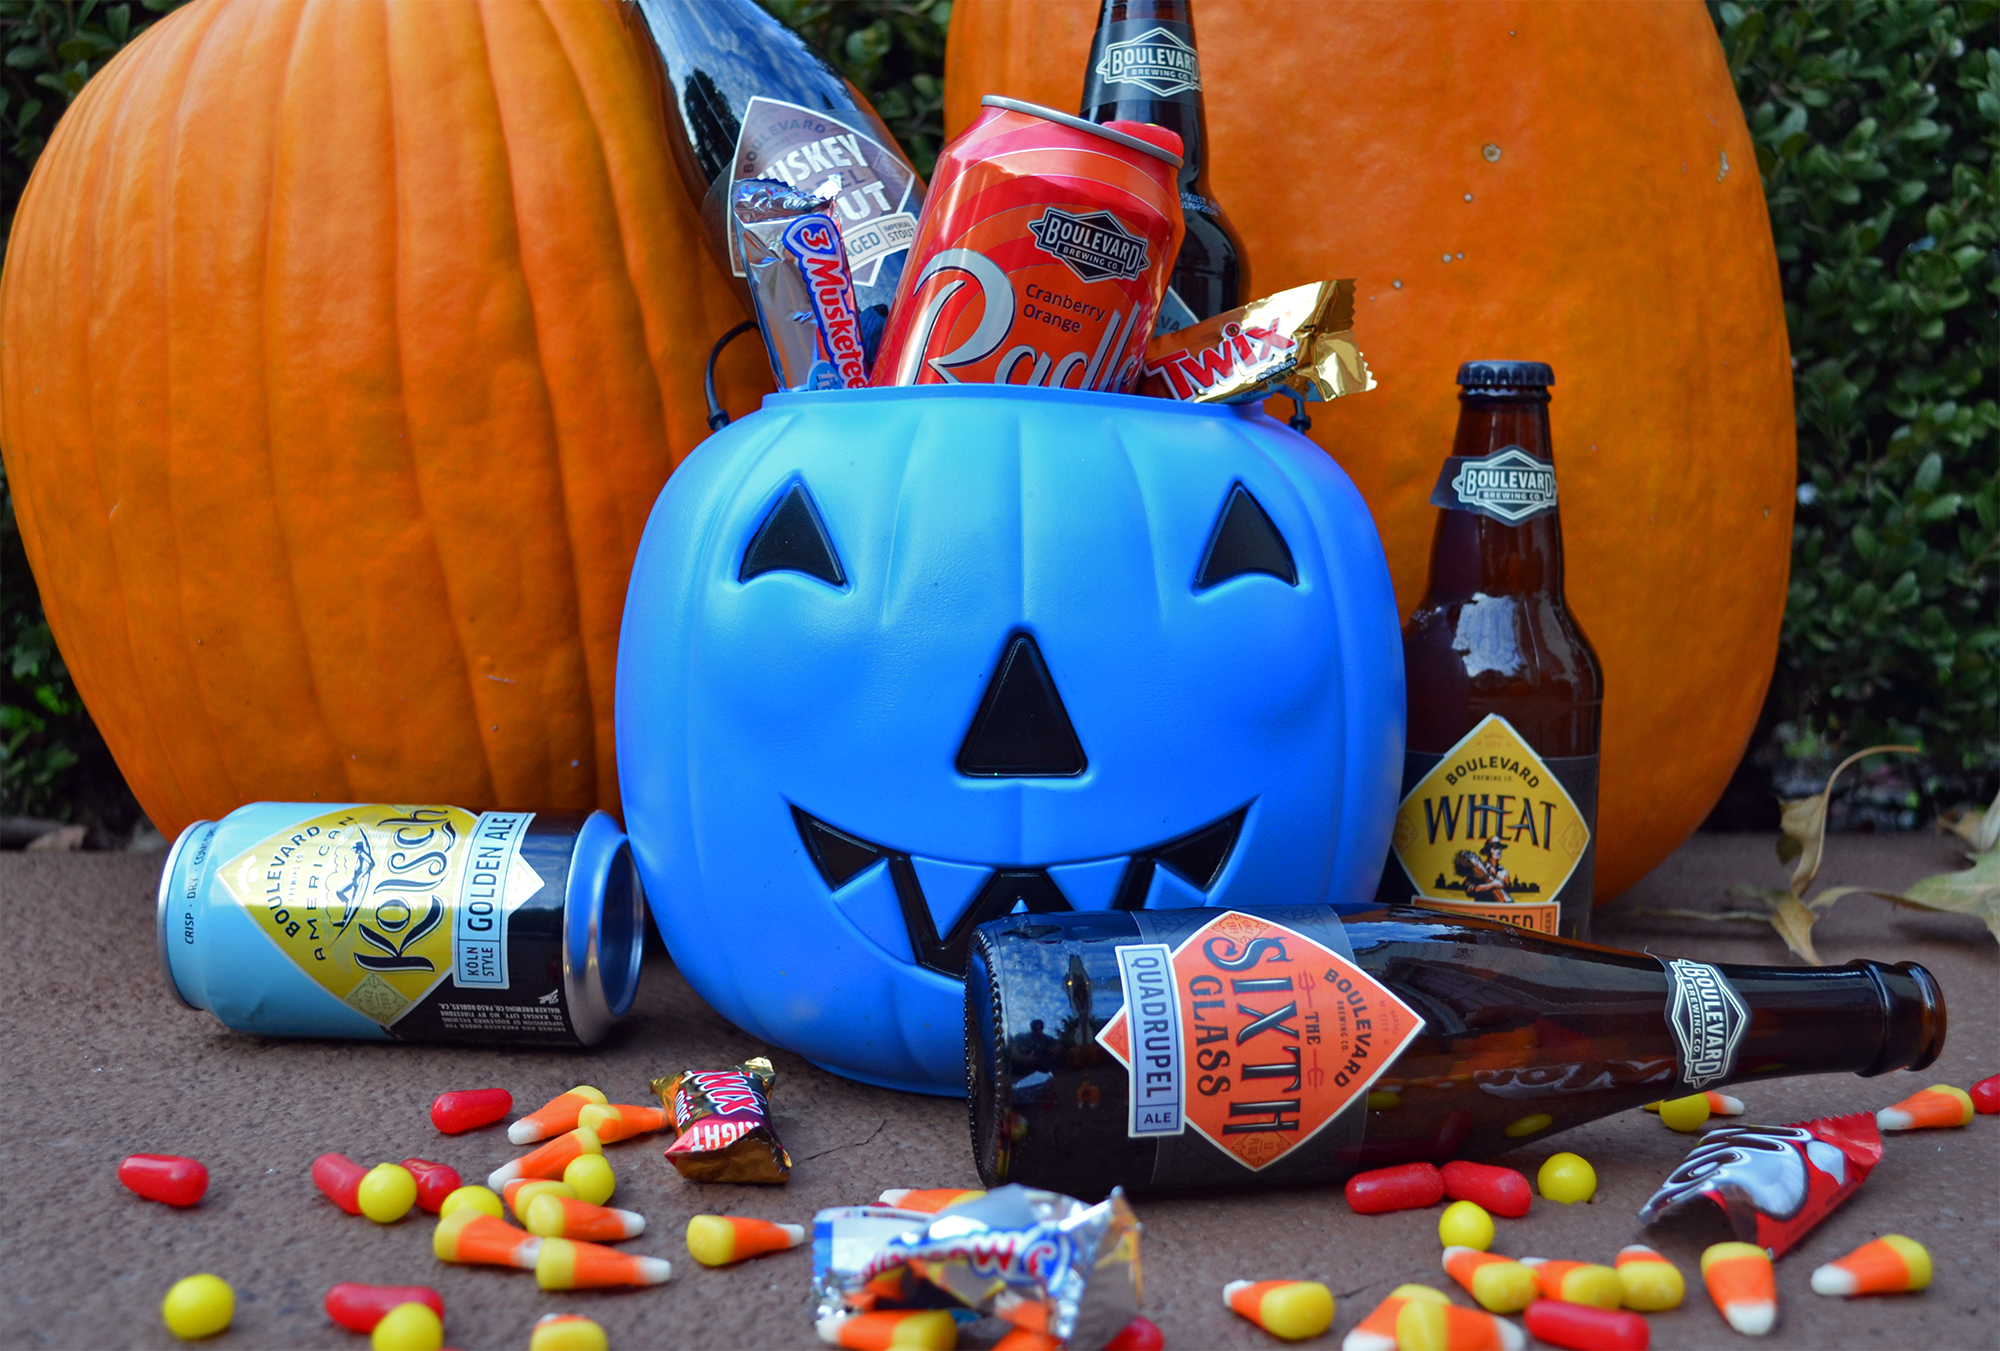 Boulevard beer and Halloween candy